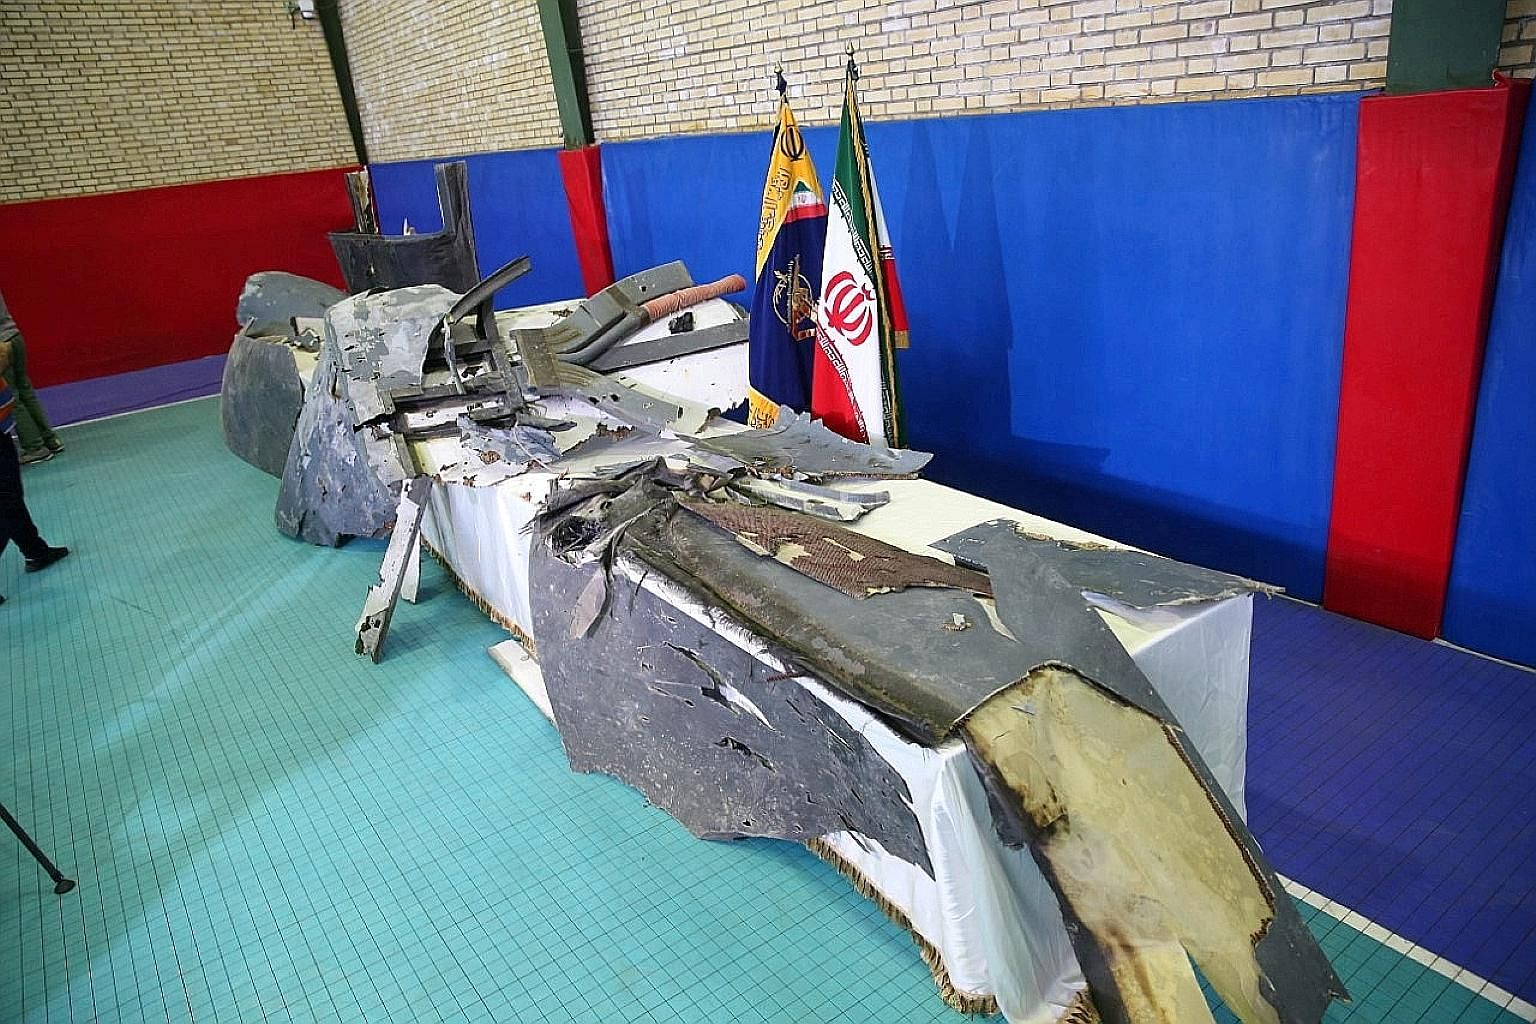 The purported wreckage of the American drone on display by the Islamic Revolutionary Guard Corps in Teheran last Friday. Iran said it was found 6.4km within its territorial waters.